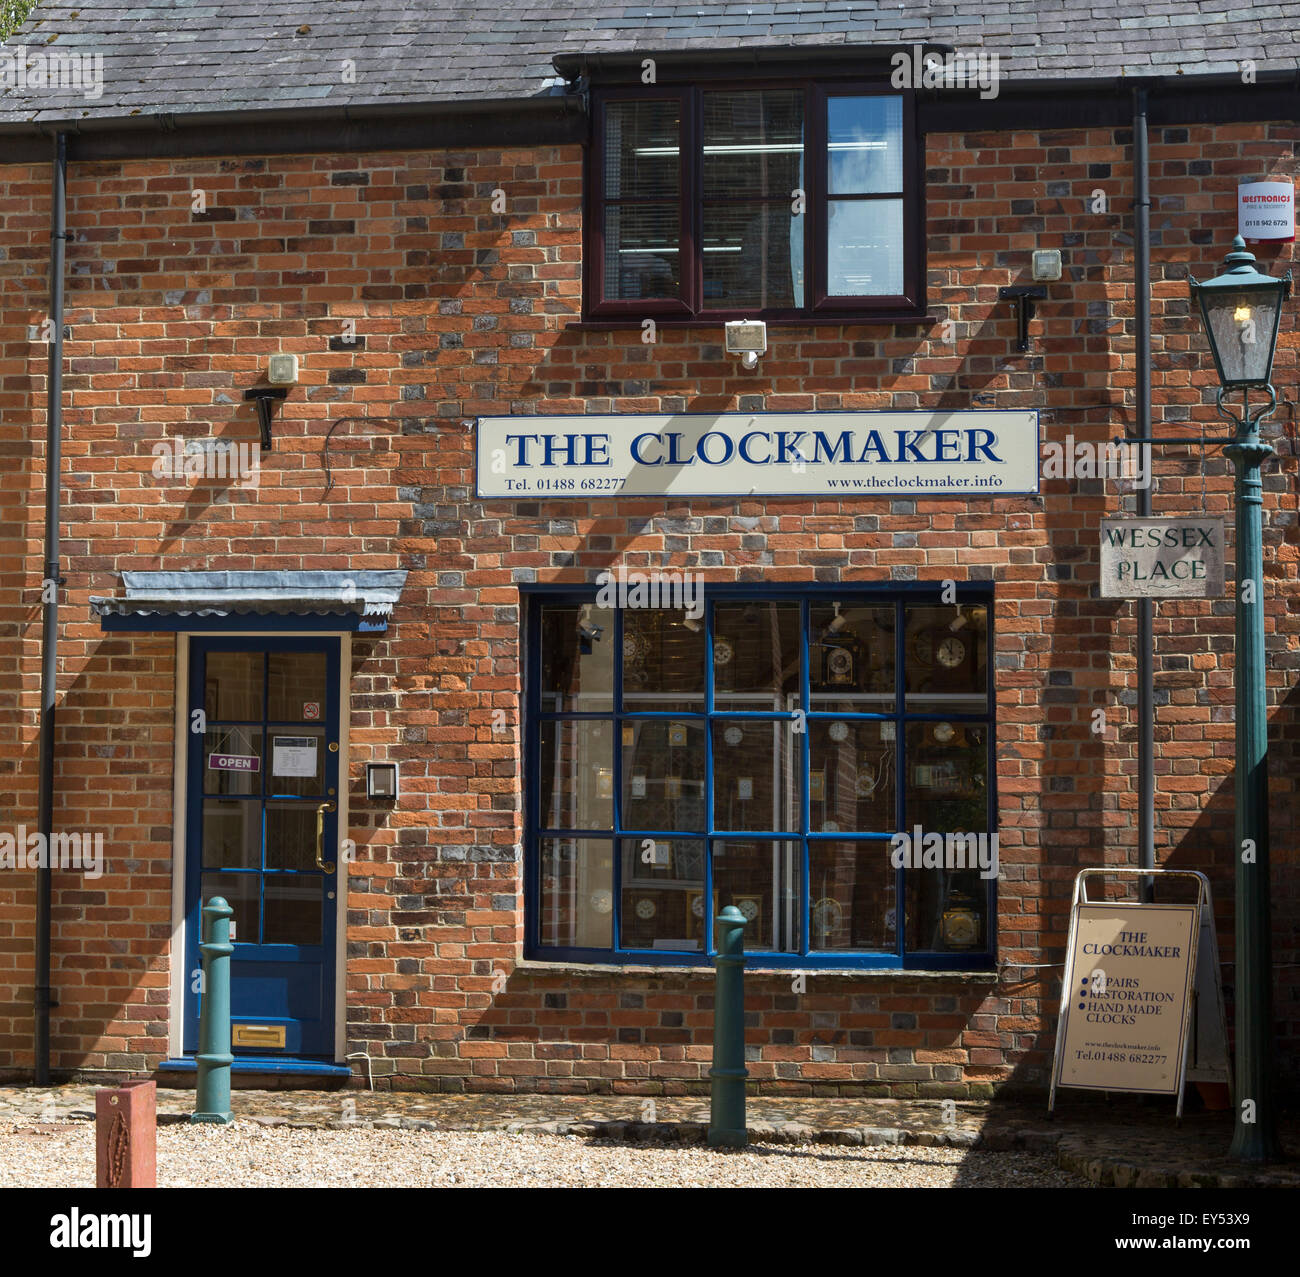 Specialist clockmaker shop, Hungerford, Berkshire, England, UK - Stock Image